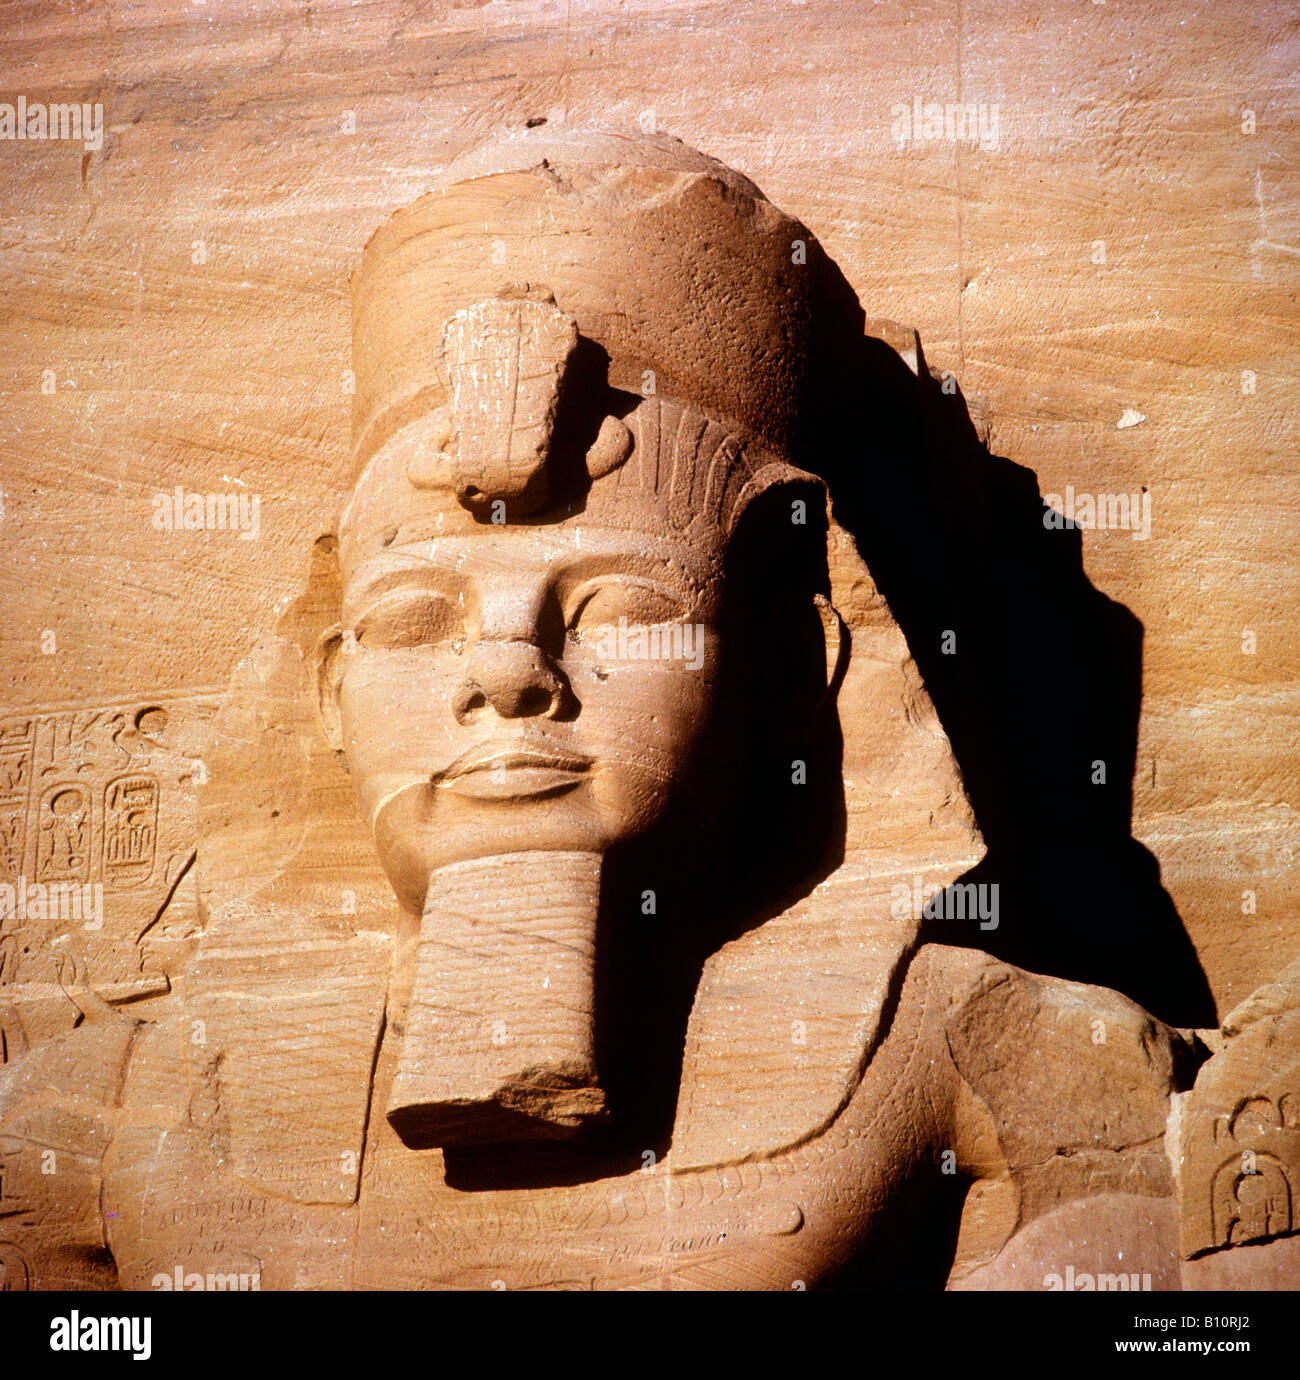 Rameses II from Abu Simbel Egypt  ©The Ancient Art & Architecture Collection Ltd. - Stock Image